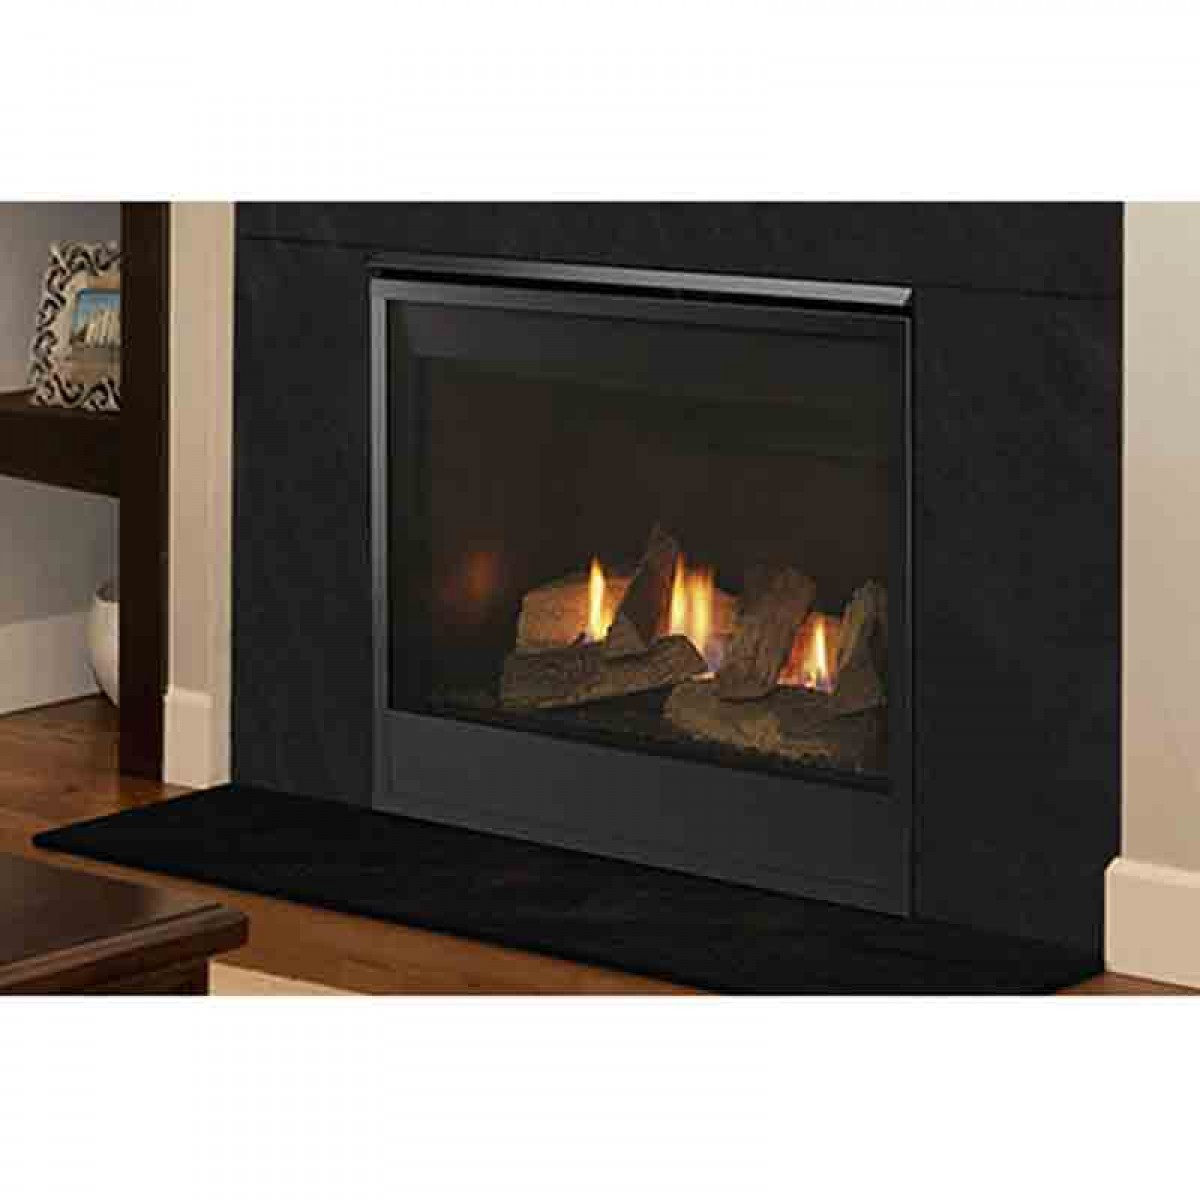 Majestic Mercury 32 Direct Vent Gas Fireplace